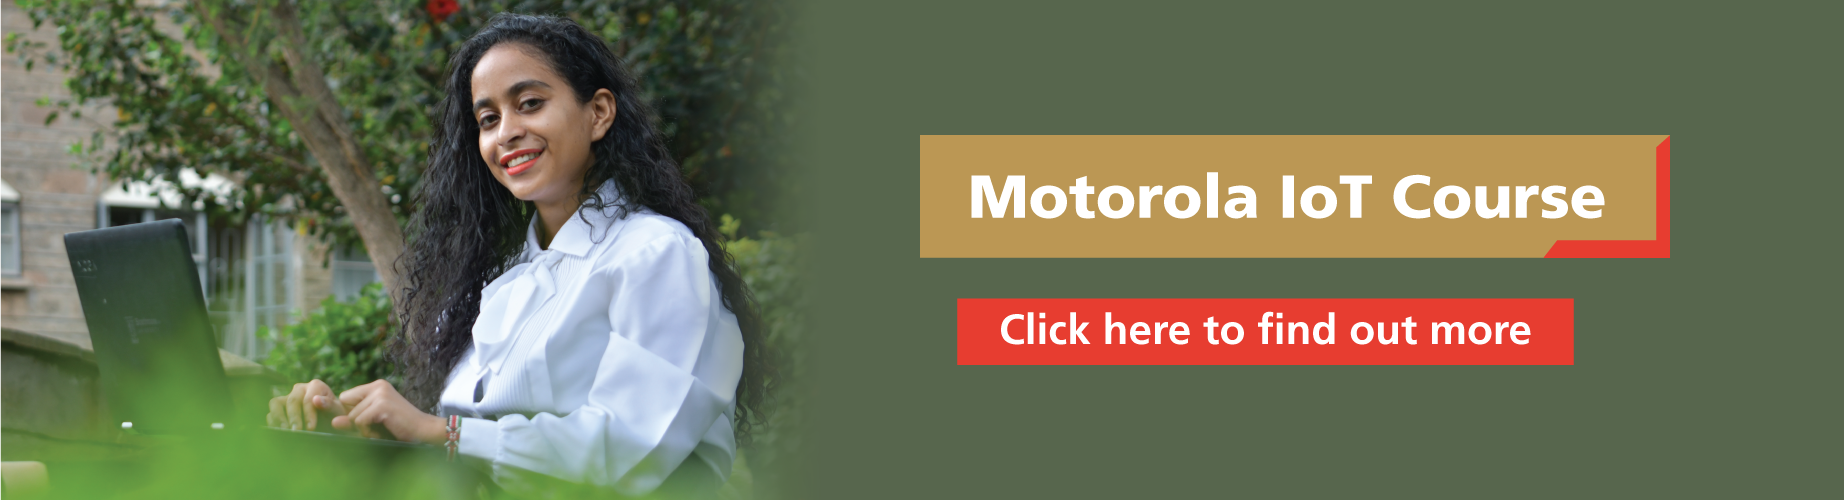 web-banner-Motorola-Training-course